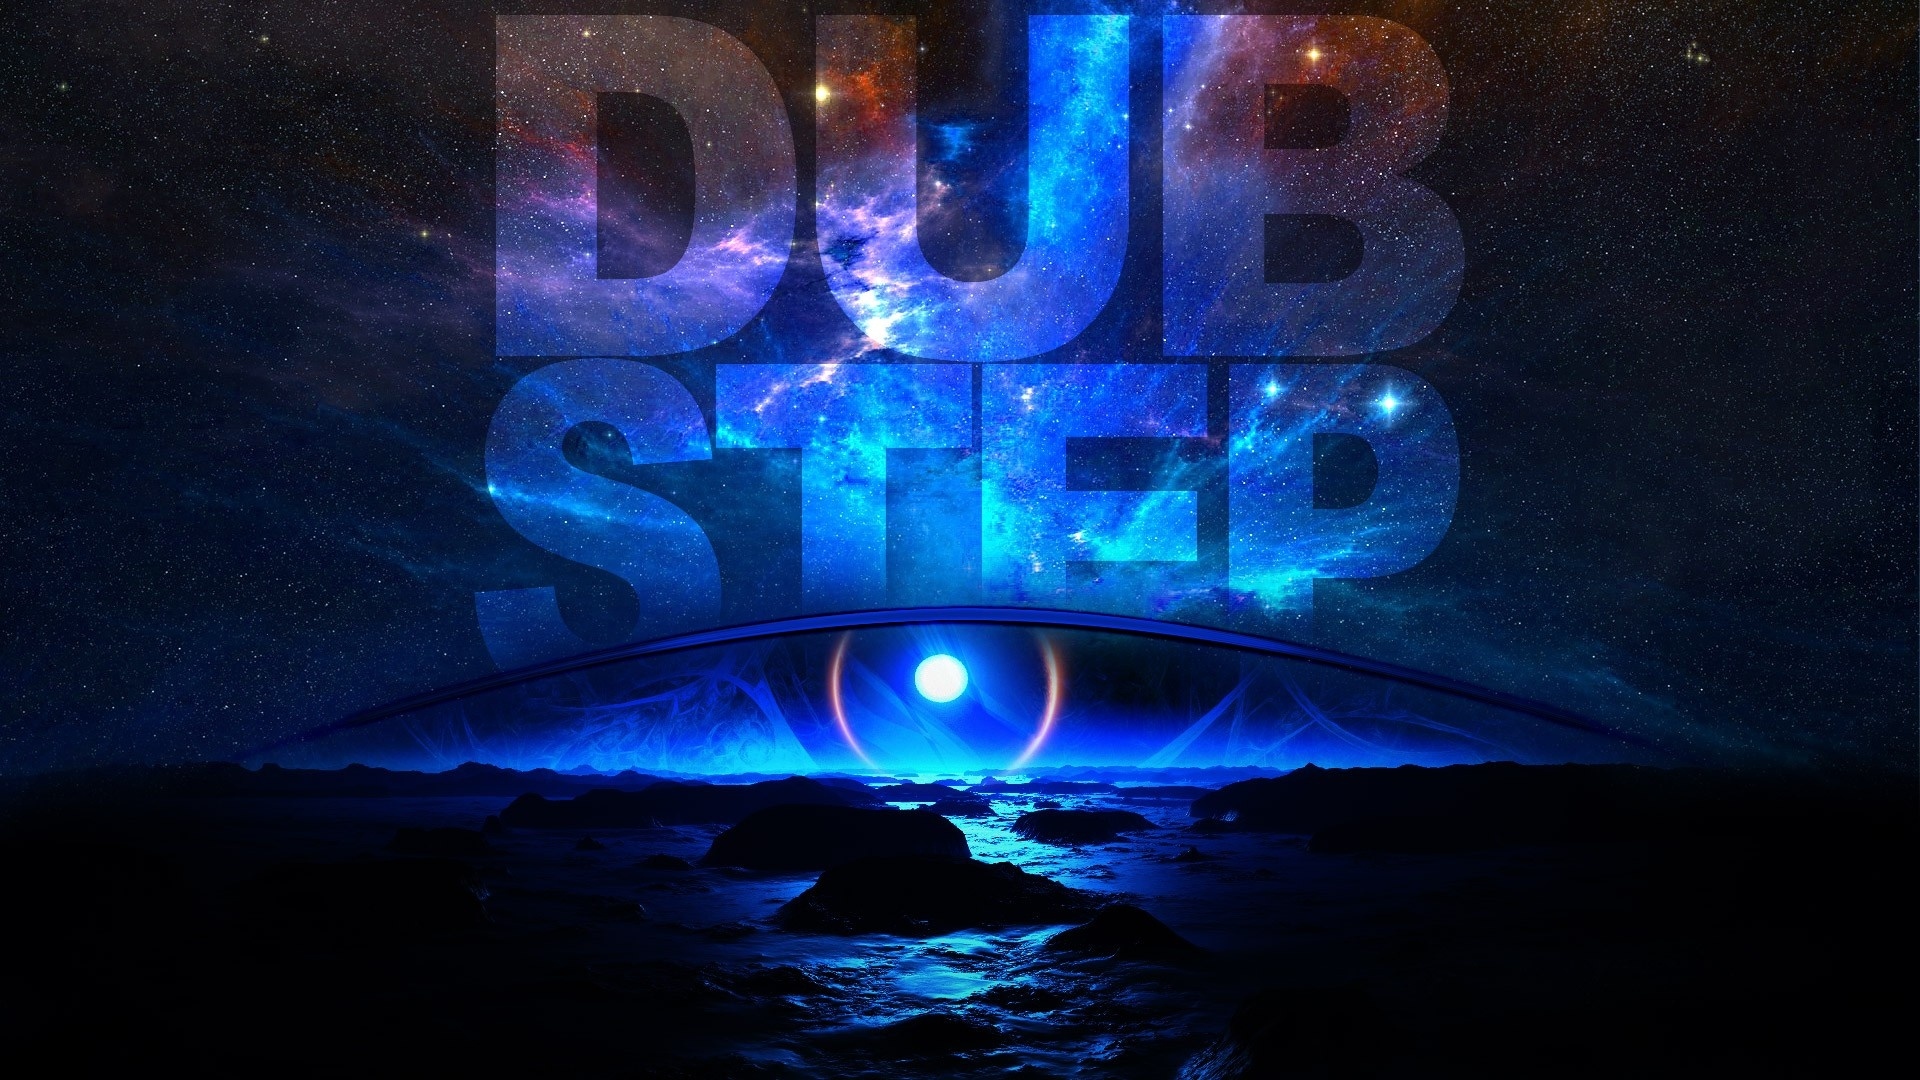 abstract dubstep wallpaper 1080p - photo #14